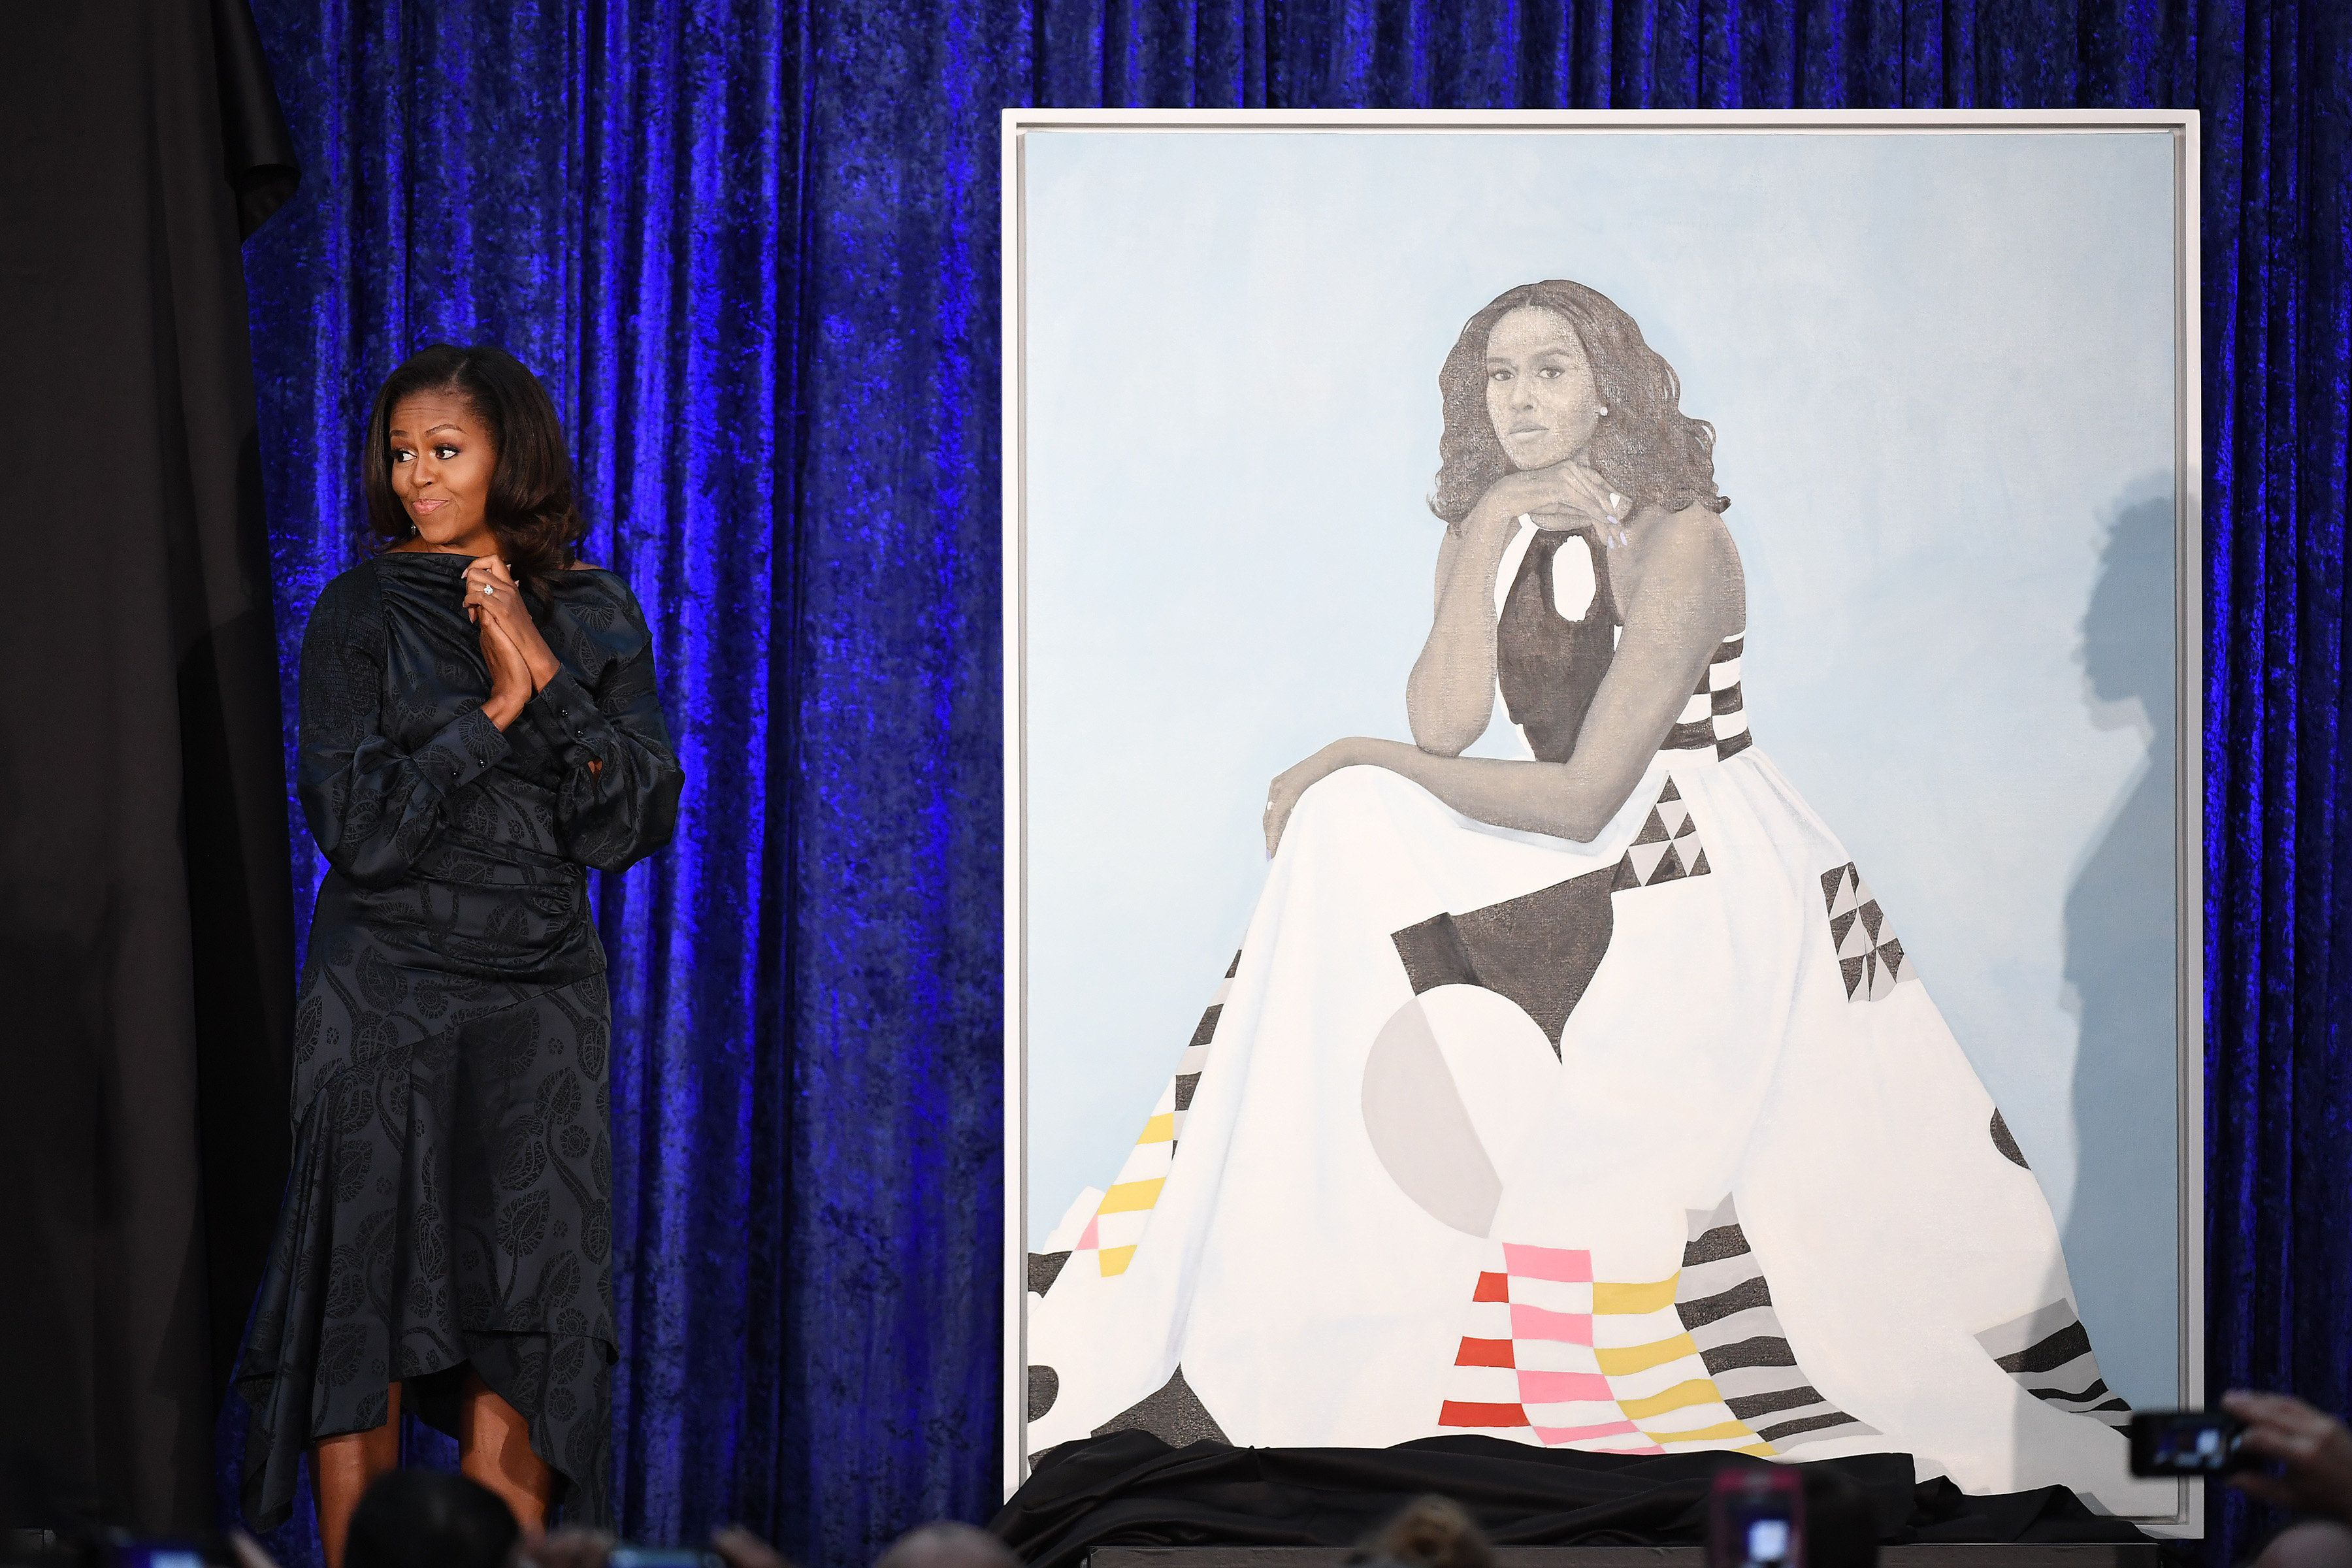 WASHINGTON, DC - FEBRUARY 12: Former First Lady Michelle Obama stands next to her portrait as she and former President Barack Obama have their portraits unveiled at the Smithsonian National Portrait Gallery on Monday February 12, 2018 in Washington, DC. The former President's portrait was painted by Kehinde Wiley while the former First Lady's portrait was painted by Amy Sherald. (Photo by Matt McClain/The Washington Post via Getty Images)